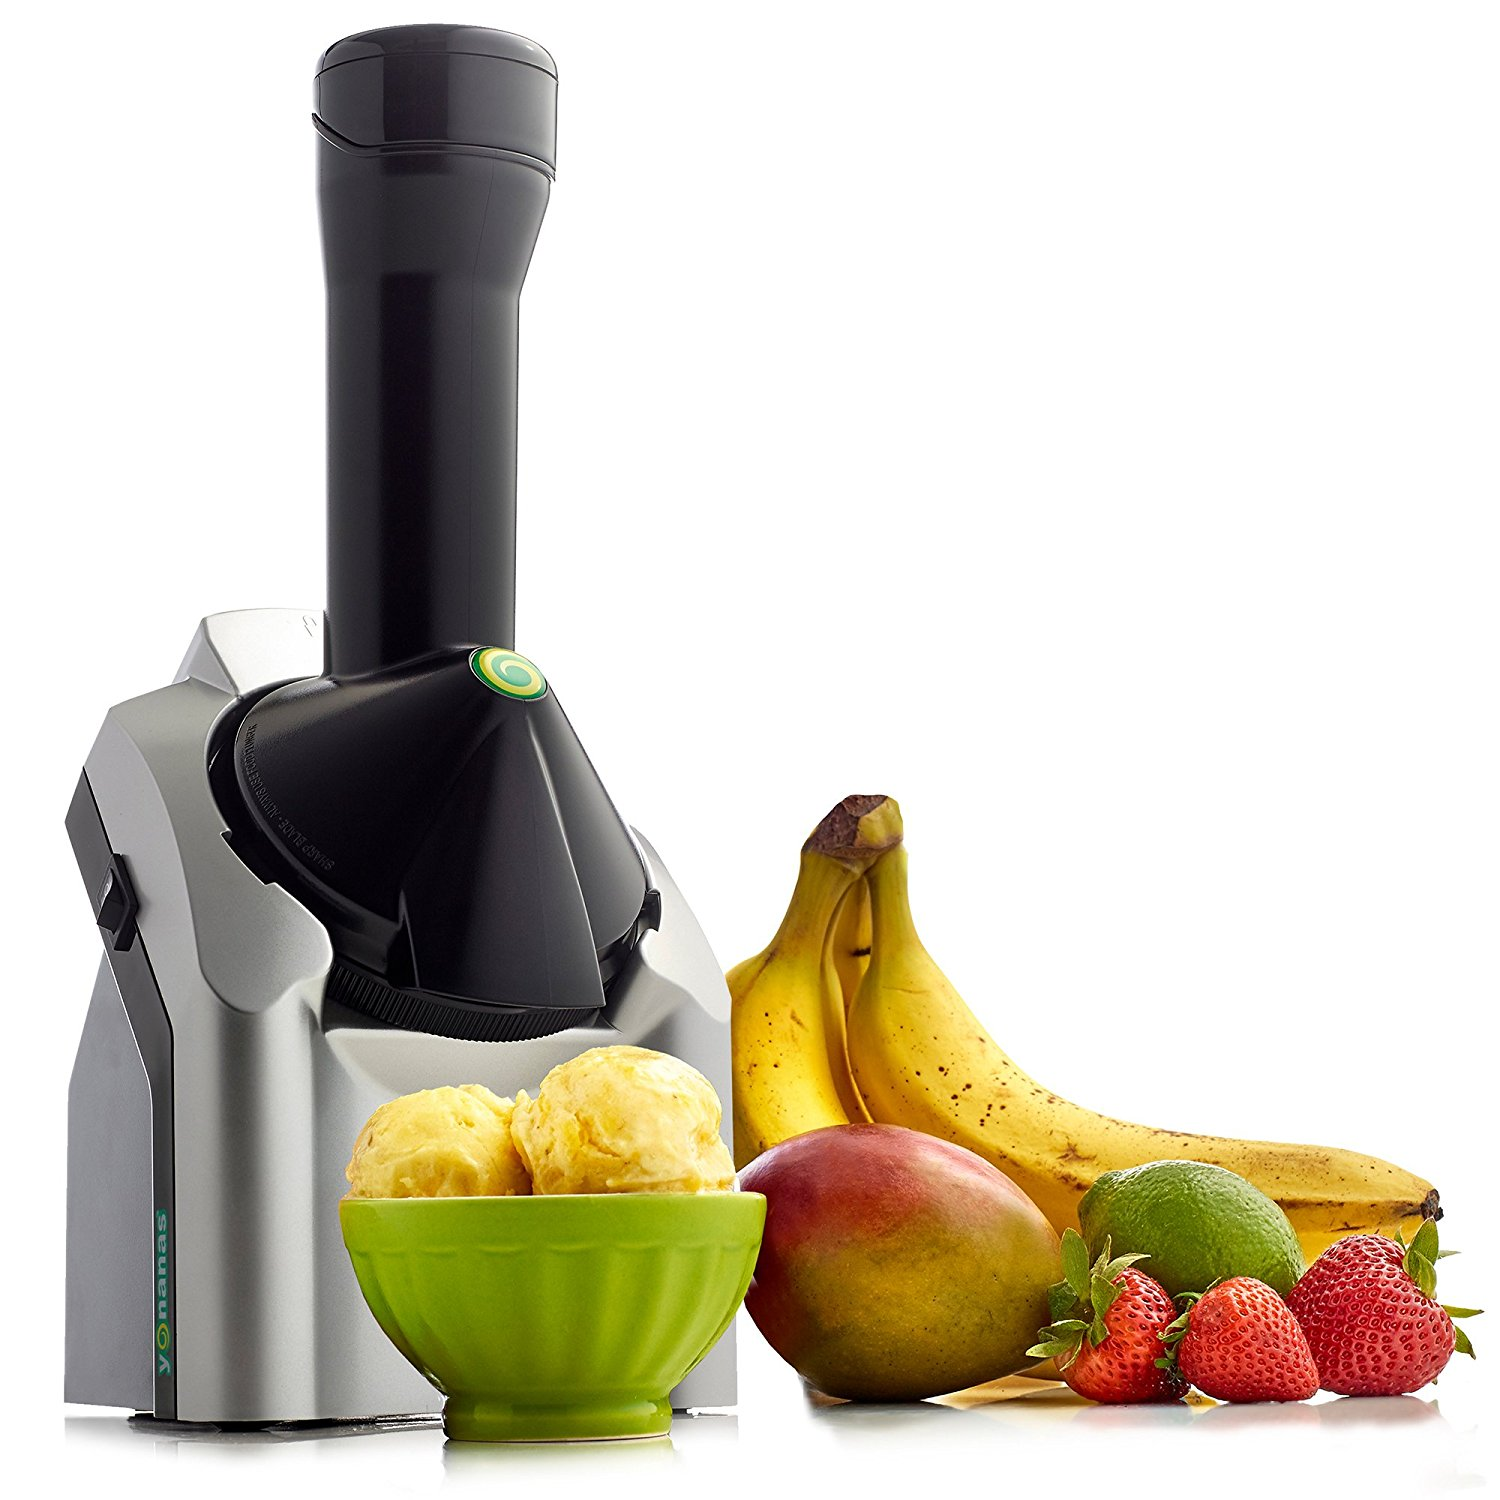 Yonanas 902 Classic Original Healthy Dessert Fruit Soft Serve Maker Creates Fast Easy Delicious Dairy Free Vegan Alternatives to Ice Cream Frozen Yogurt Sorbet Includes Recipe Book